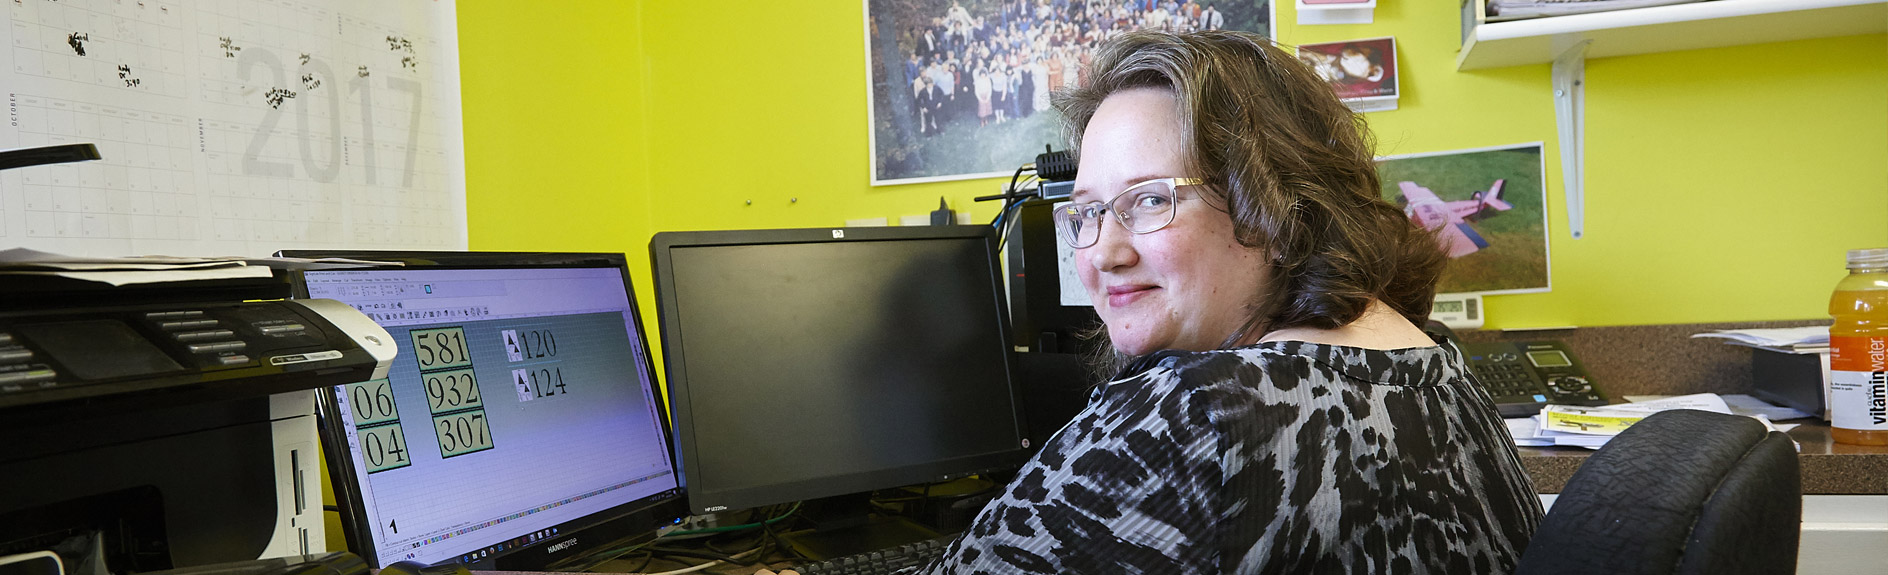 mental health and housing support services lady working behind computers